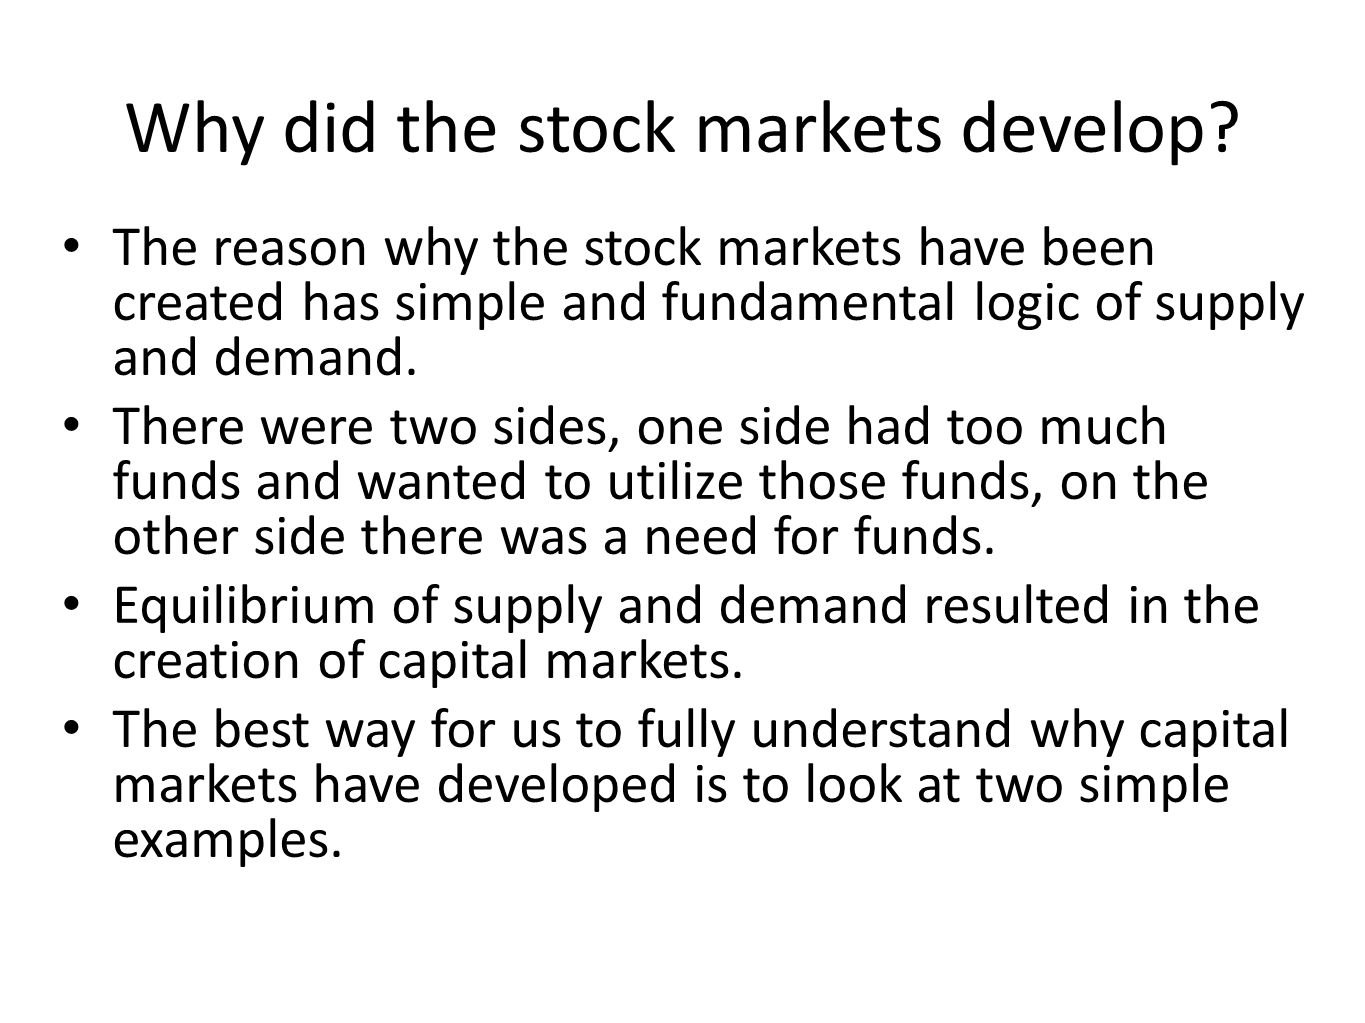 Why did the stock markets develop? The reason why the stock markets have been created has simple and fundamental logic of supply and demand. There wer